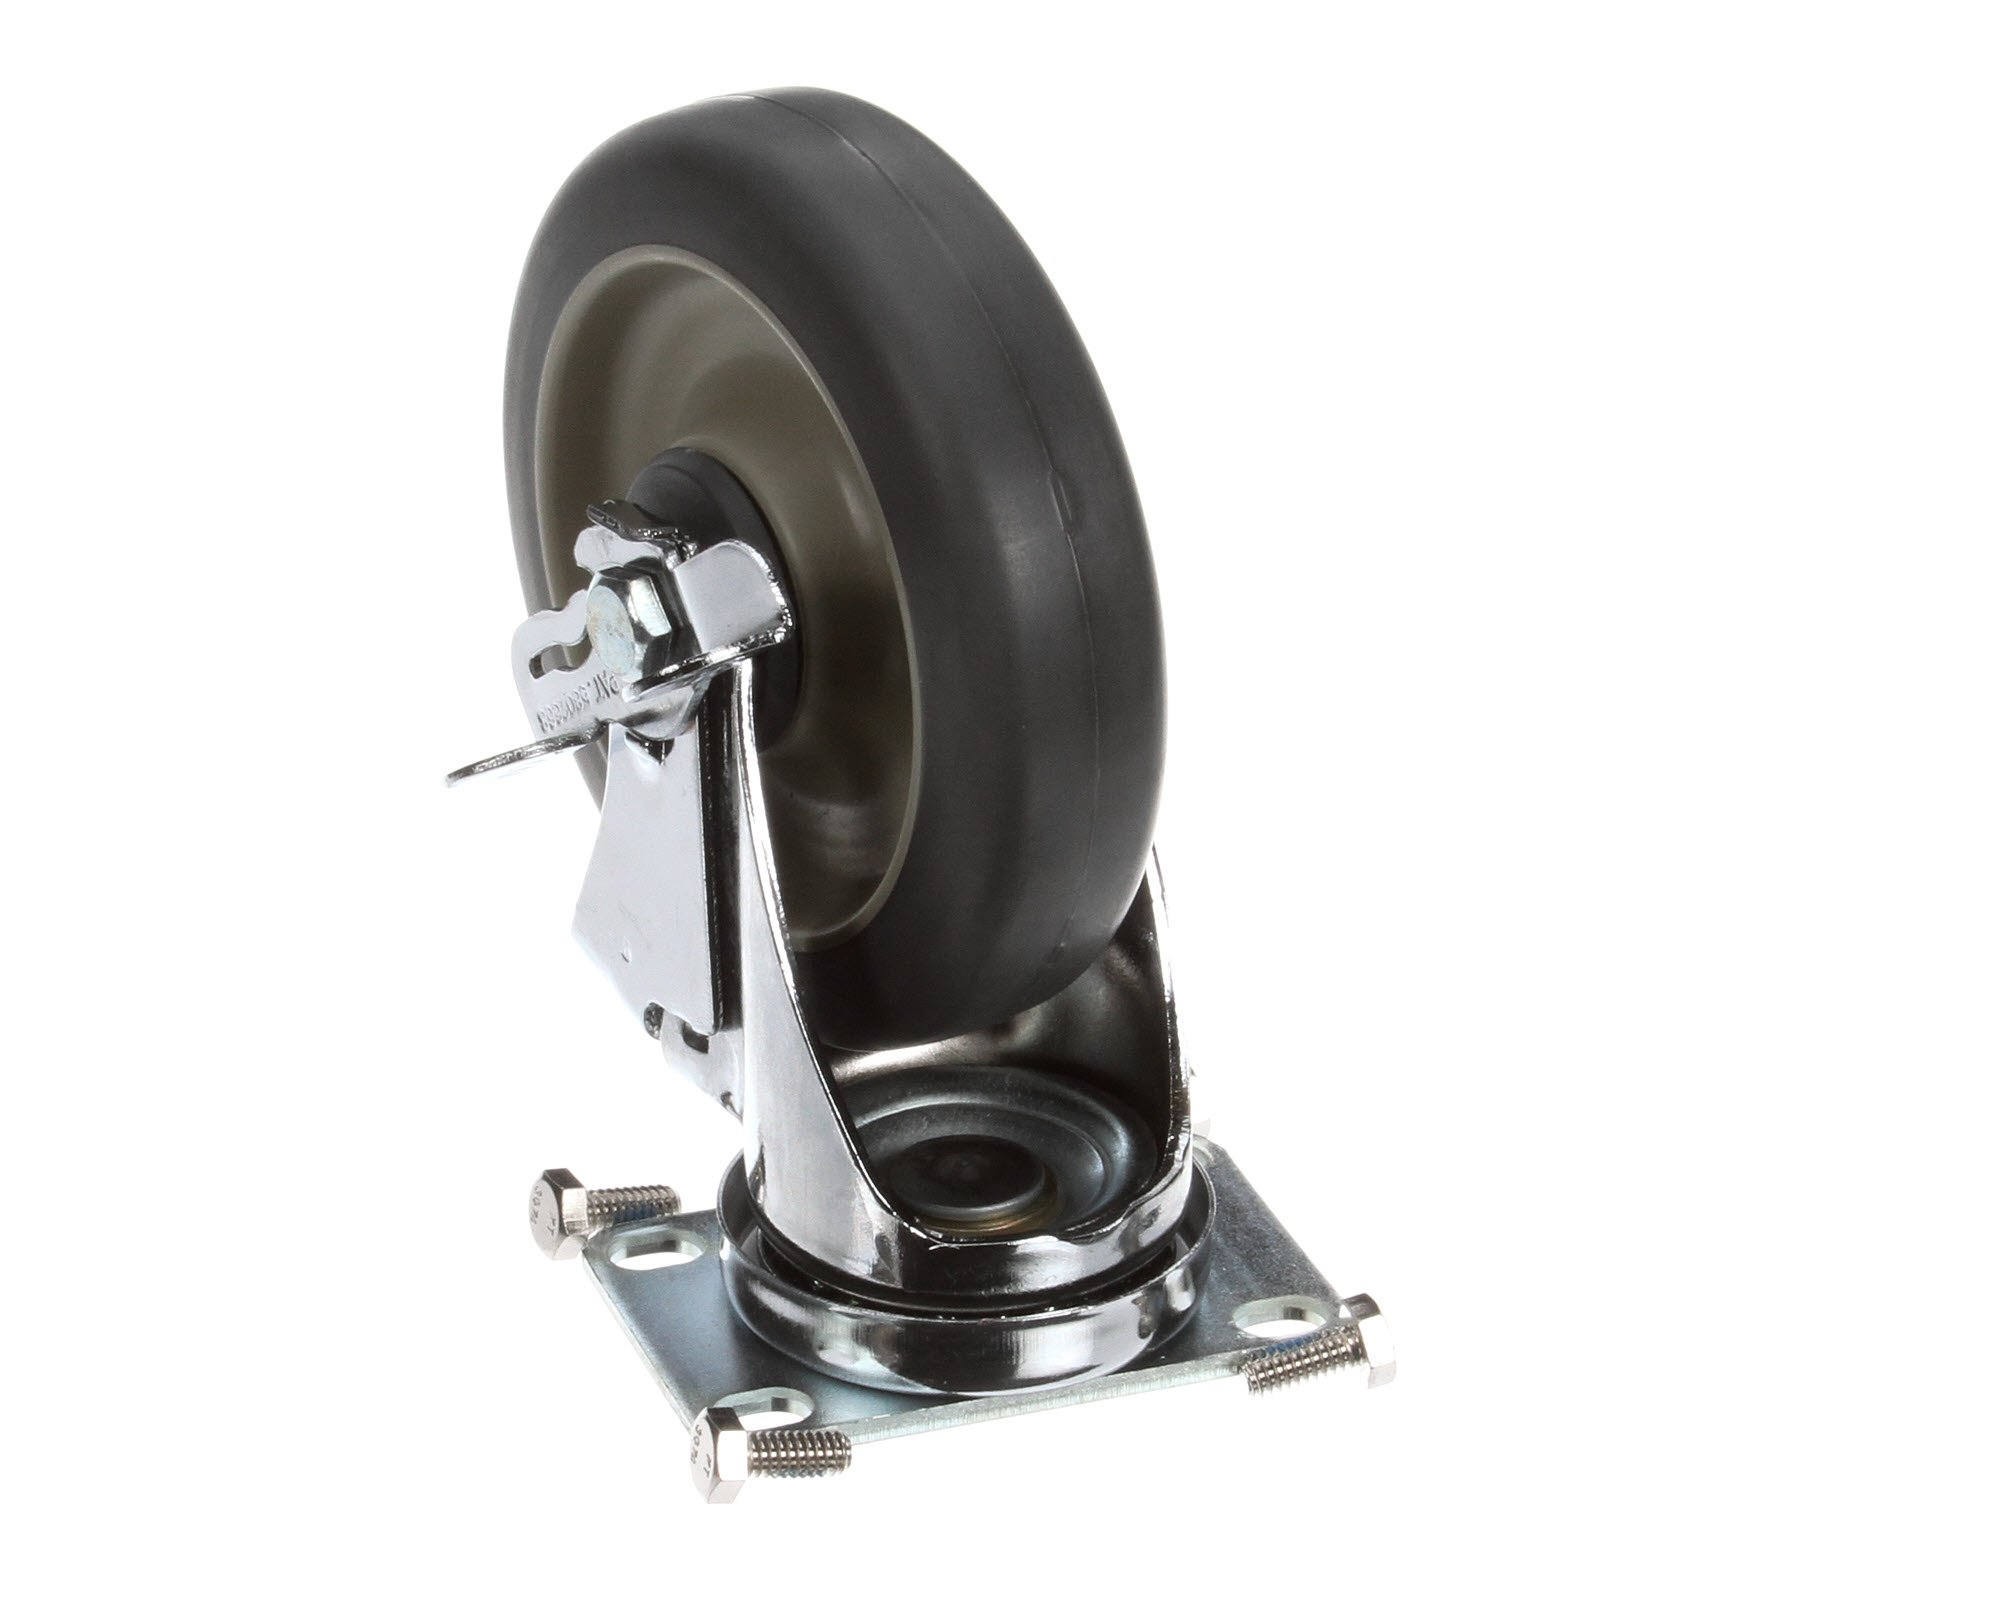 Cambro 60007 Front Swivel caster with Brake